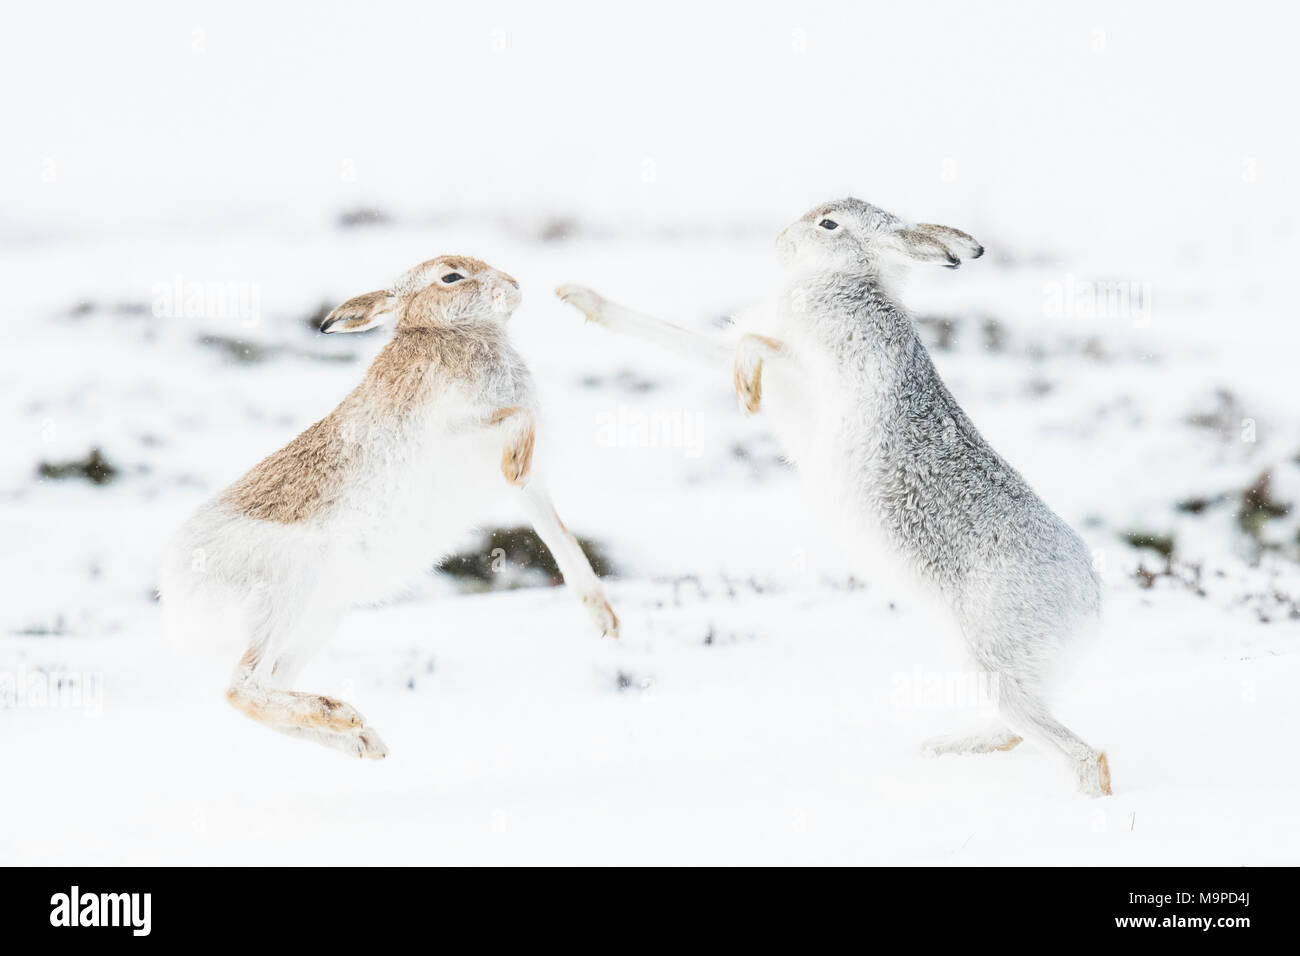 Mountain hares (Lepus timidus) boxing in the snow, behavior. hierarchy, winter coat, Cairngroms National Park, Highlands - Stock Image